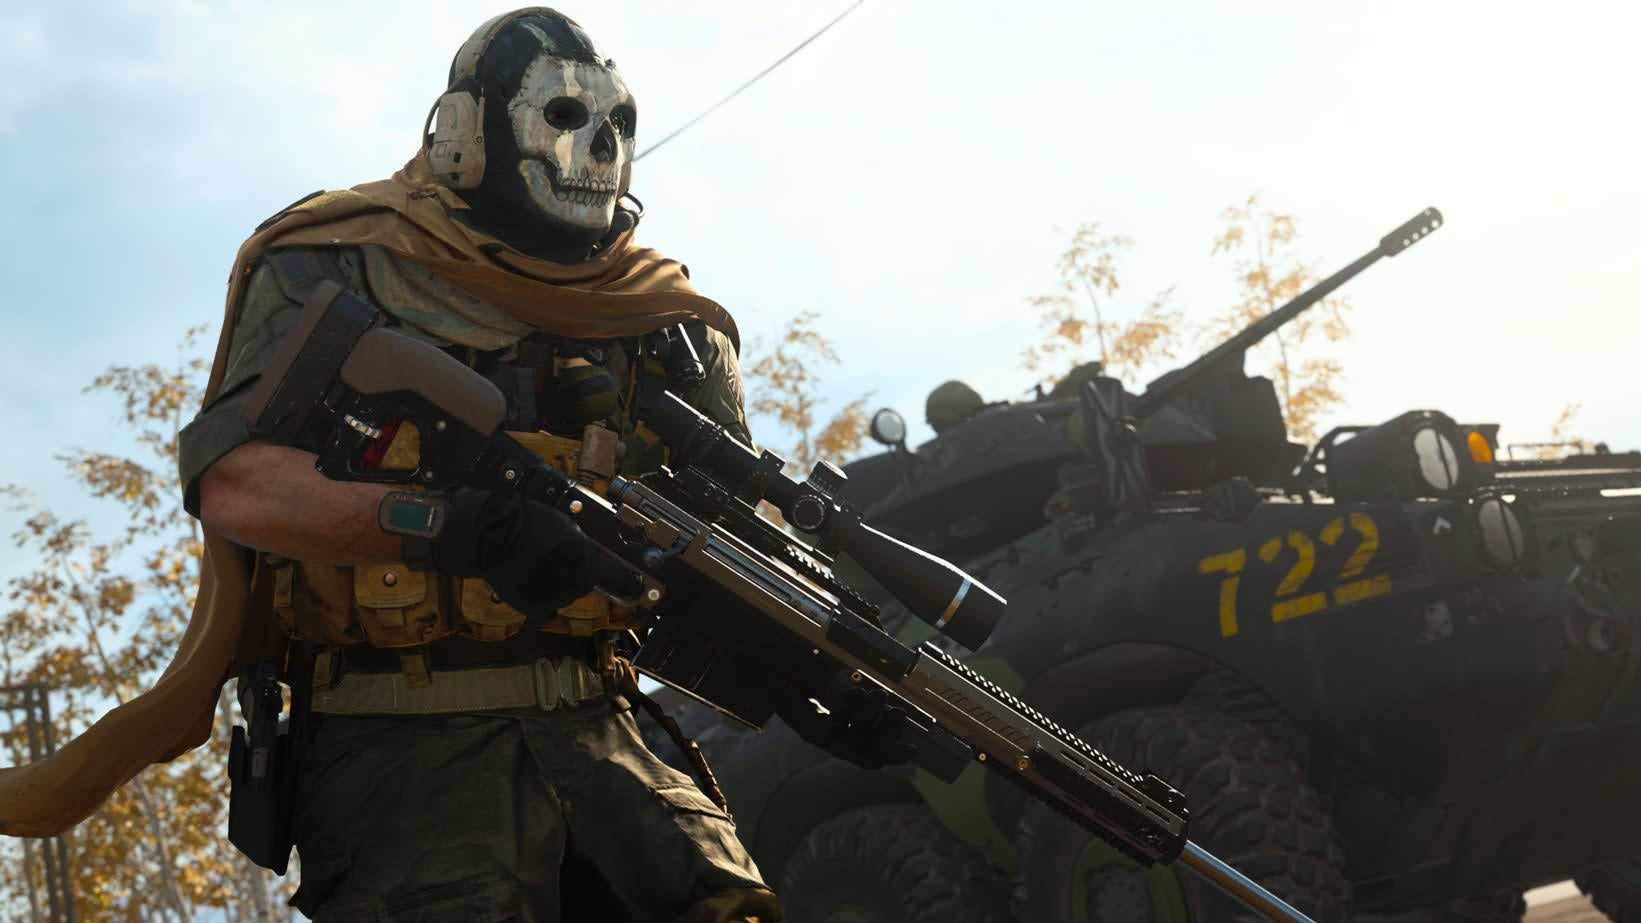 Leaks And Glitches Point To An Imminent Battle Royale Mode For Modern Warfare